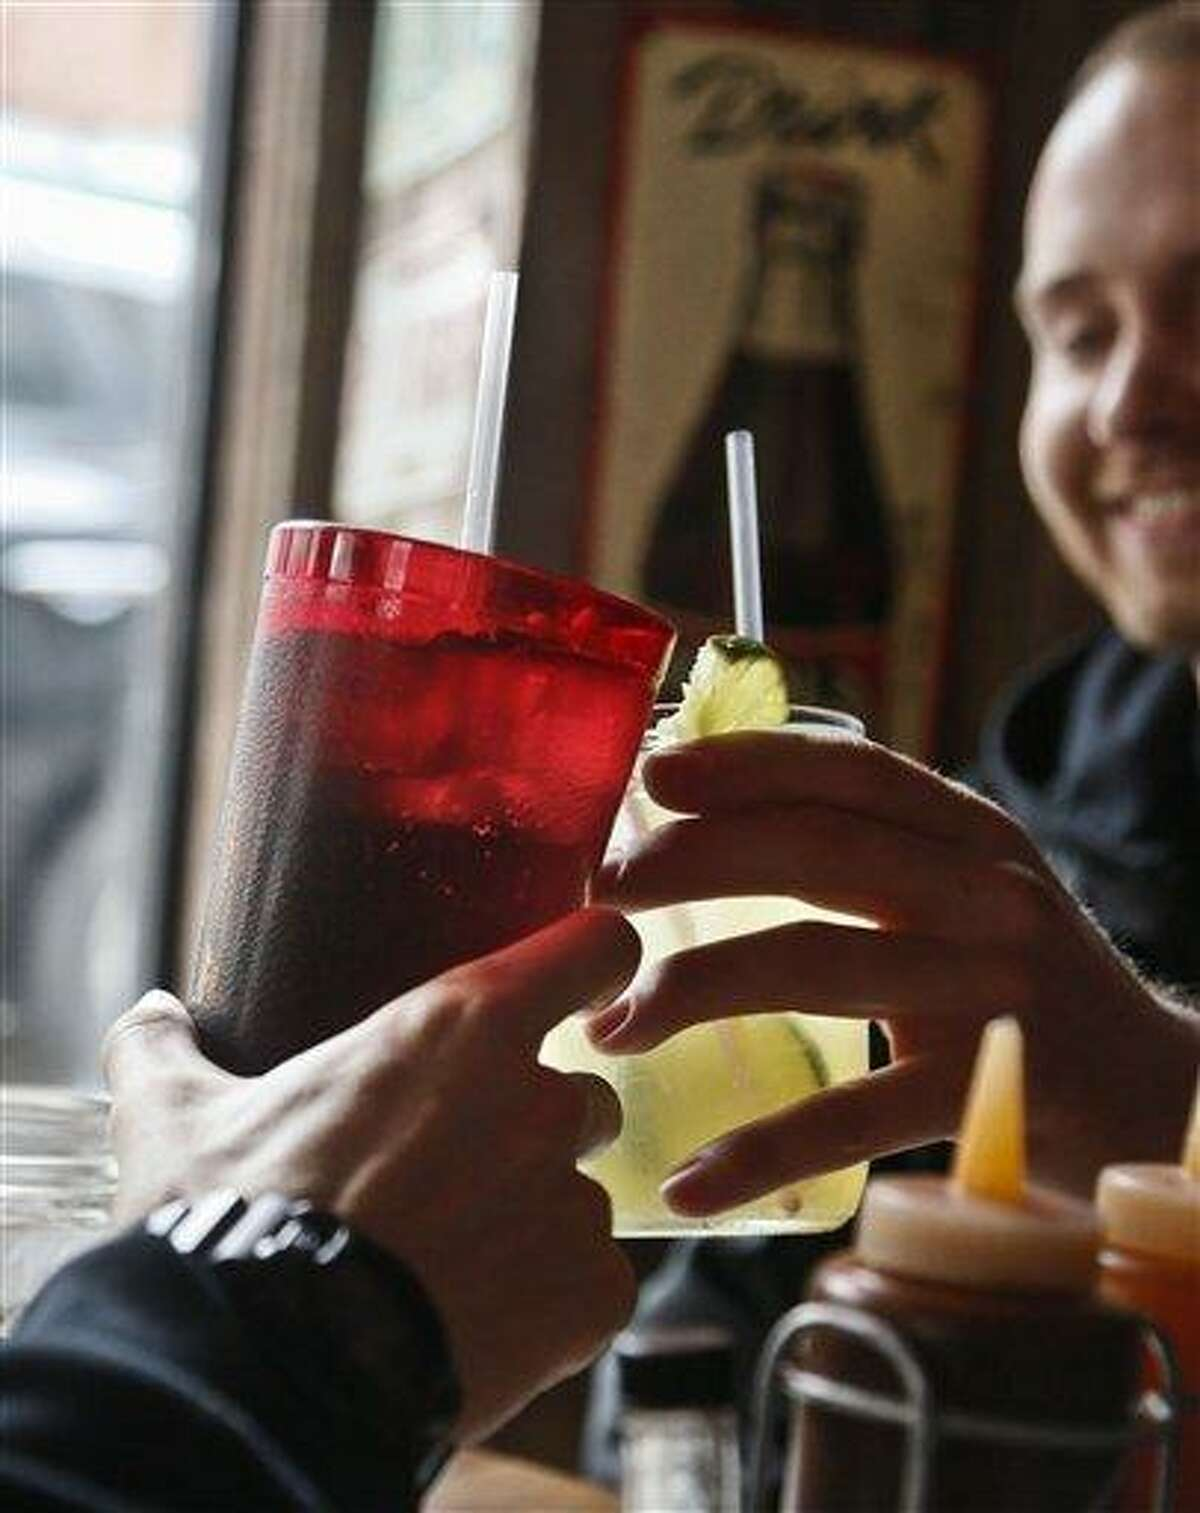 Customers at Brother Jimmy's BBQ call cheers with 24-ounce and 16-ounce beverages, March 8 in New York. Associated Press file photo